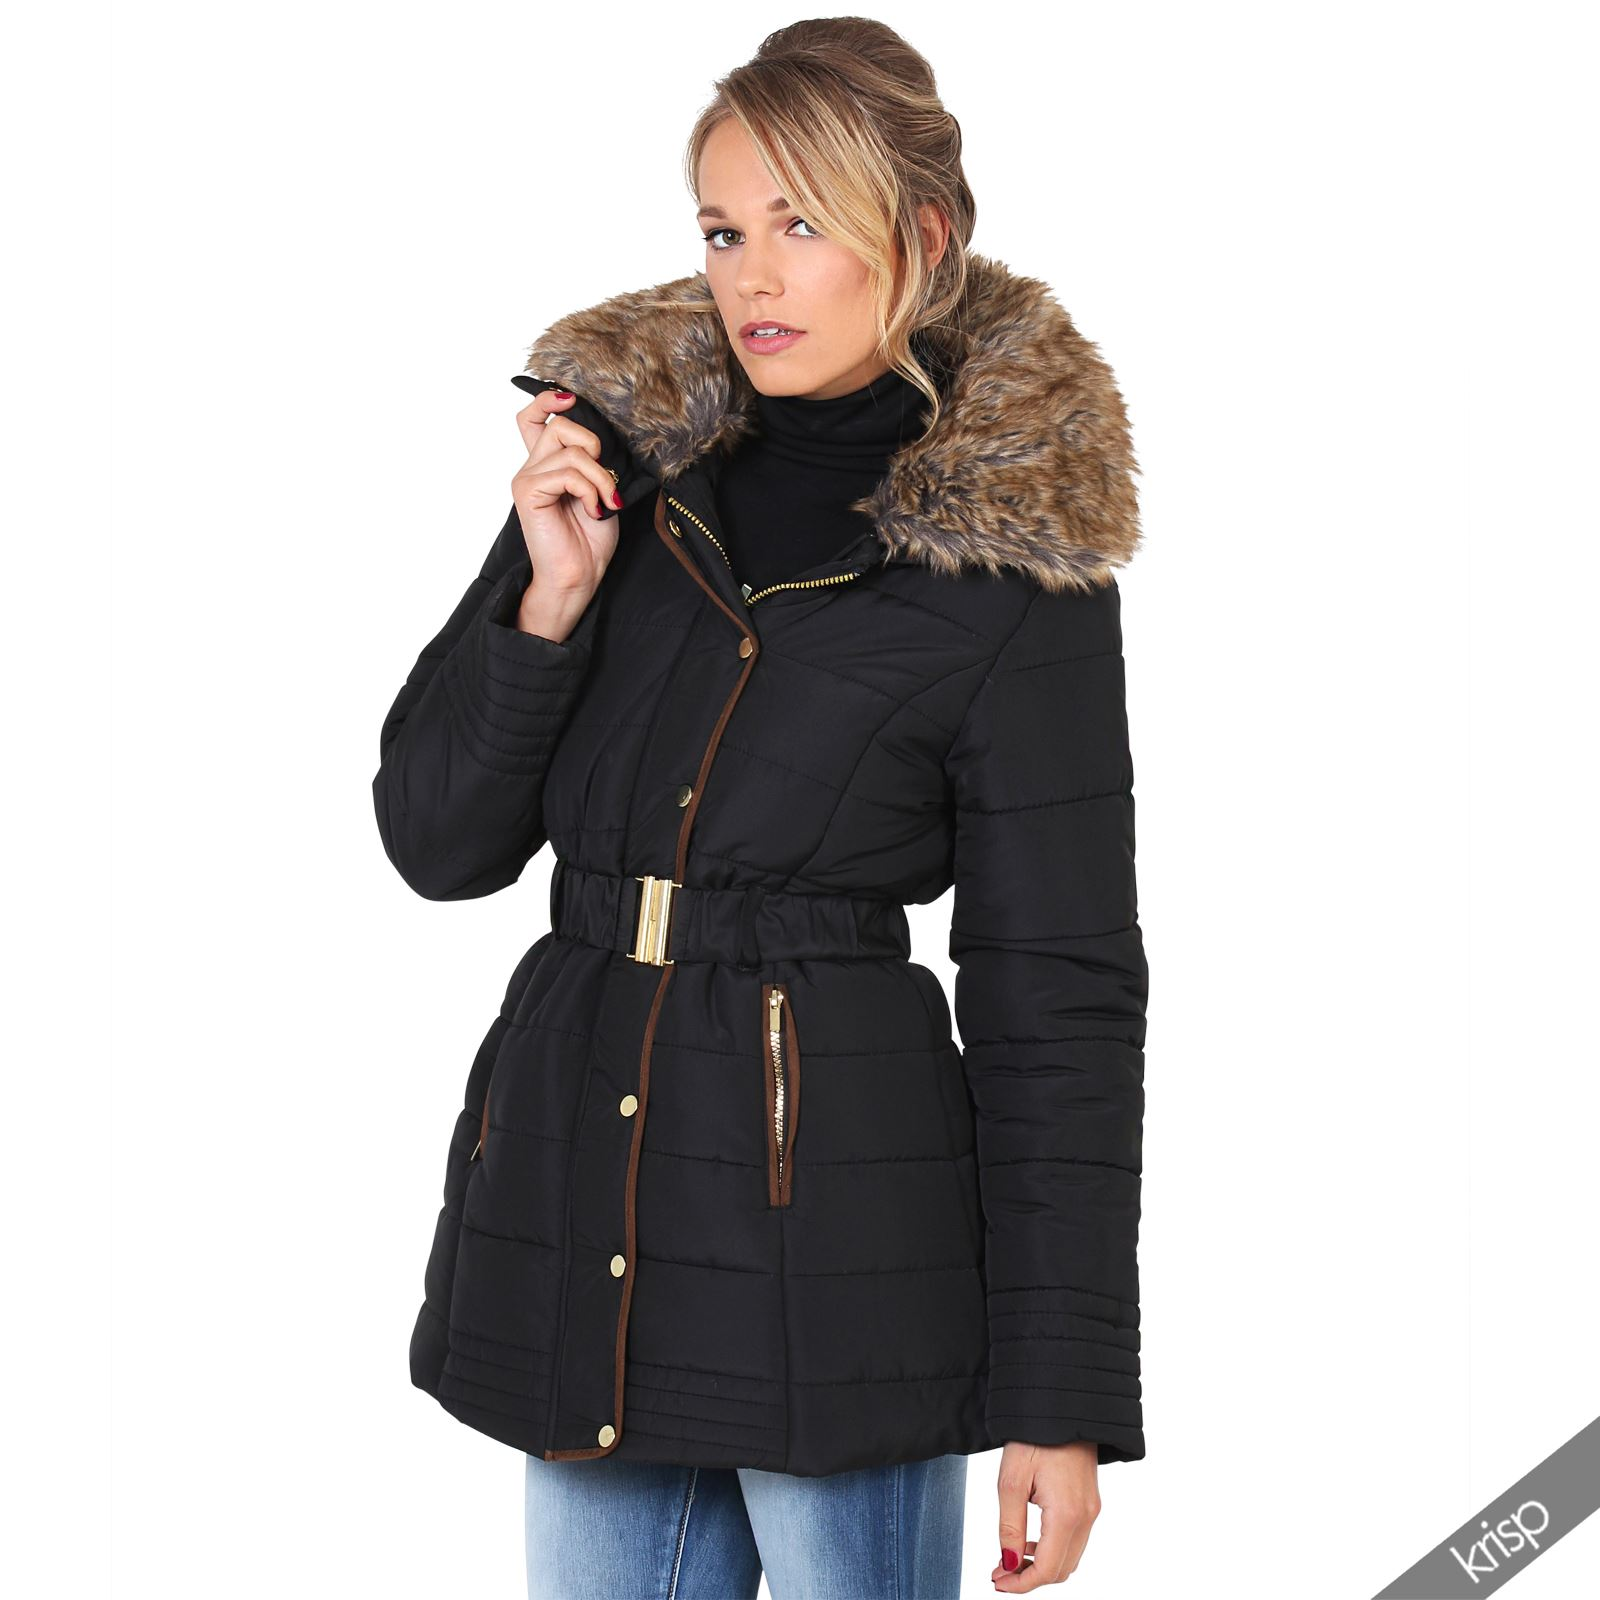 Find great deals on Womens Puffer Coats & Quilted Jackets at Kohl's today! Sponsored Links Women's Halitech Faux-Fur Hooded Heavyweight Puffer Jacket. sale. $ Regular $ Women's Sebby Collection Hooded Long Quilted Vest. sale. $ Regular $